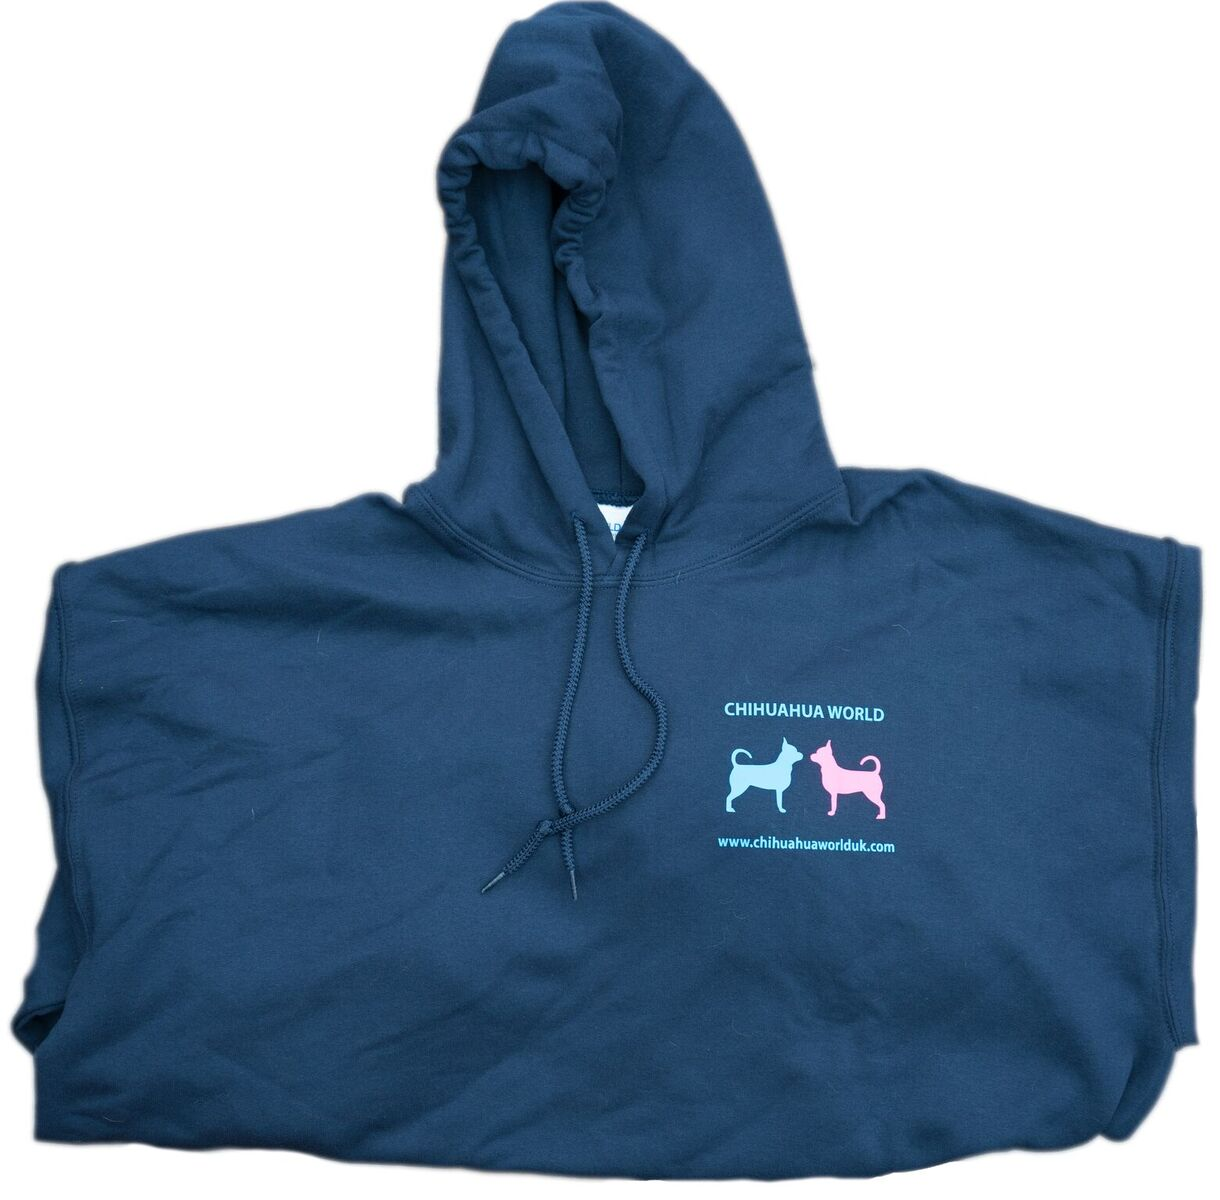 SOLD OUT Chihuahua World Hoodie Large